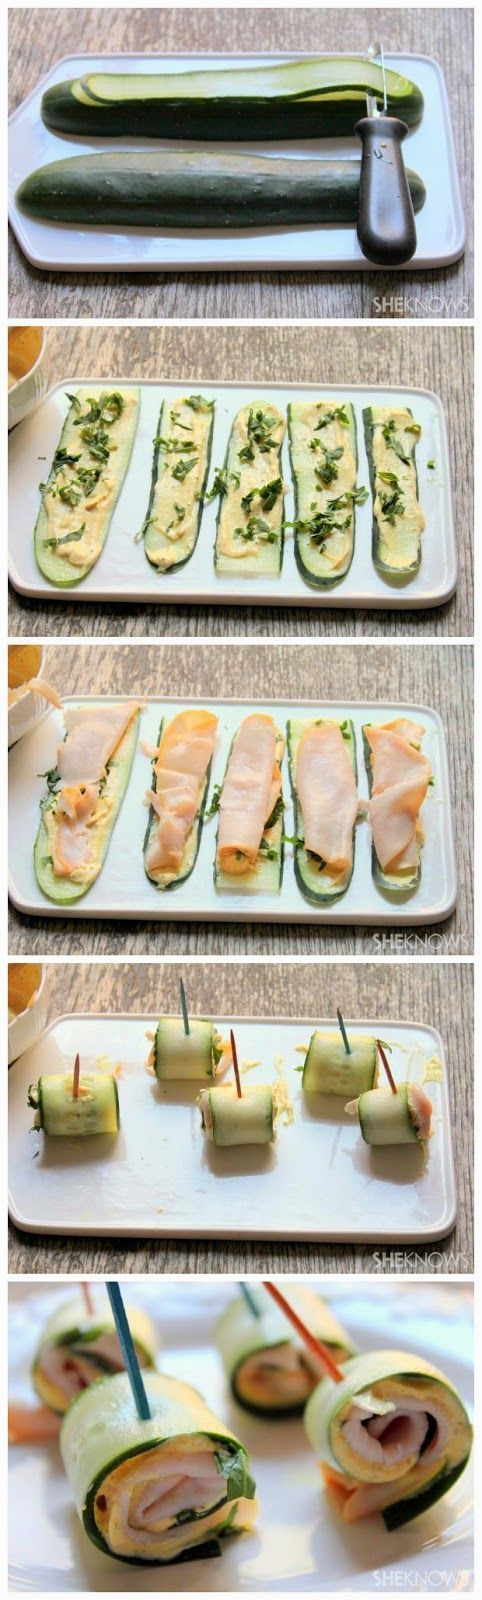 good protein snacks cucumber rollups with hummus and turkey can use zucchini too